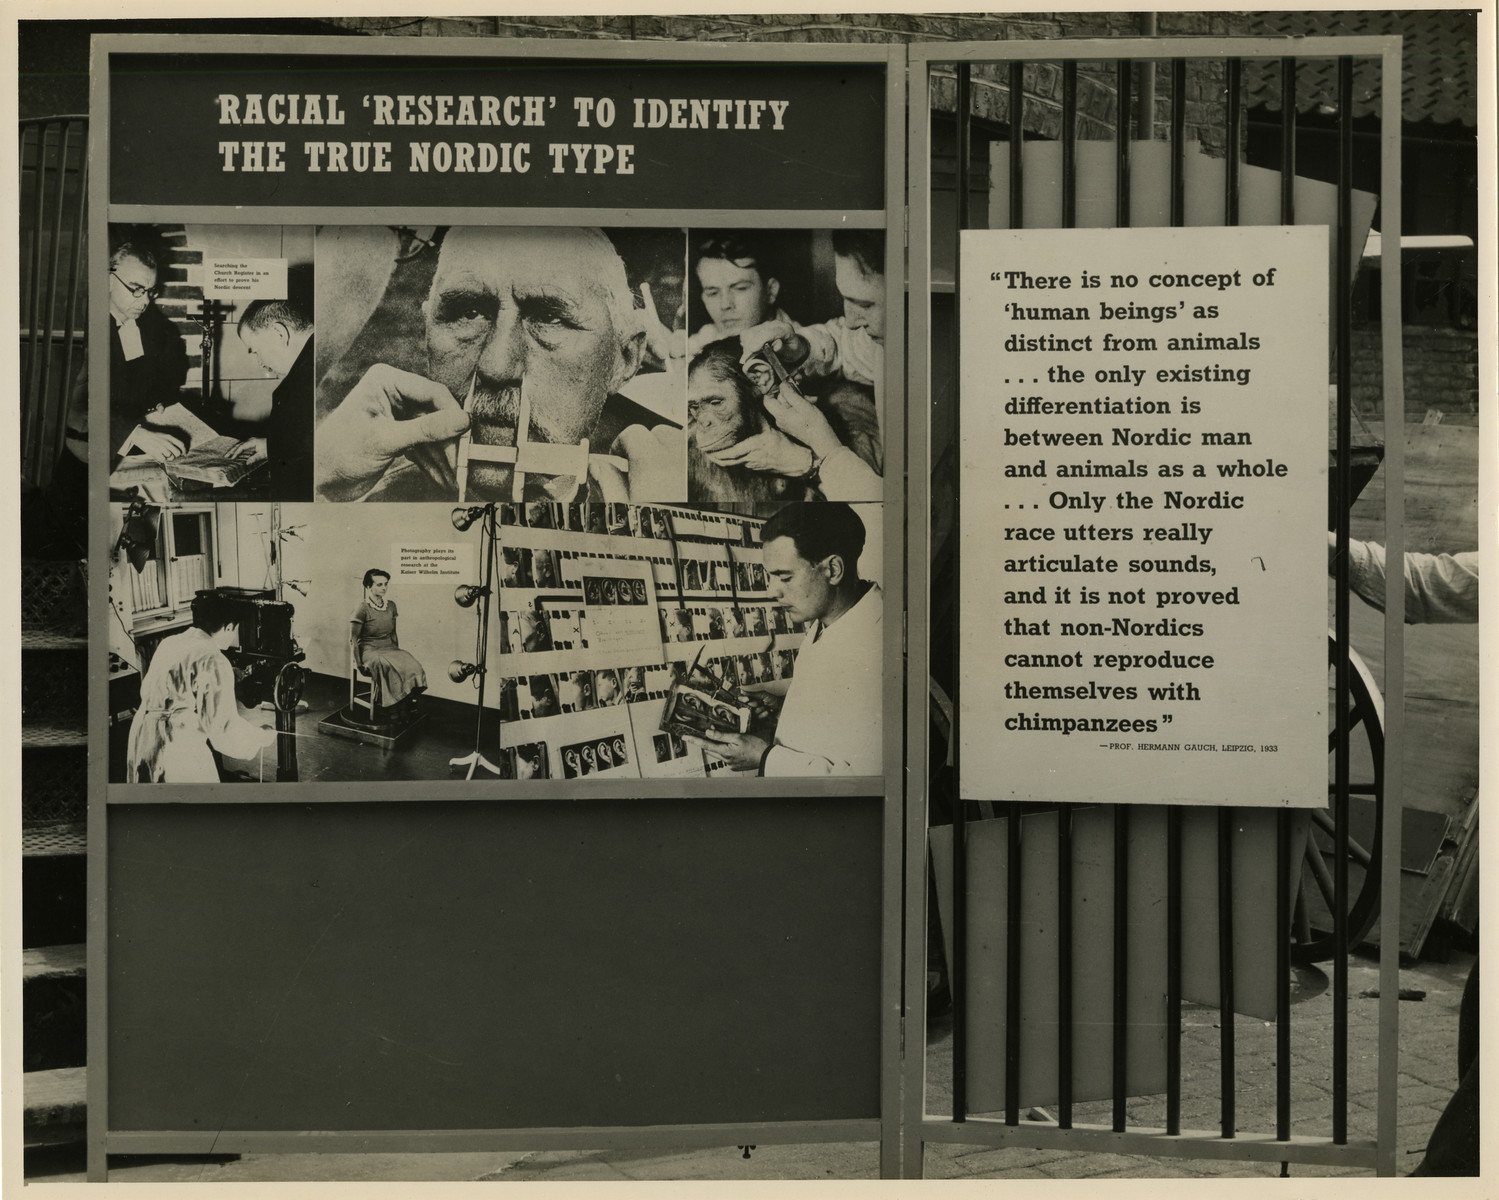 "Panel from a 1944 exhibition in London, England, entitled ""Germany- the Evidence"" showing German racial research on the Nordic Race.   The panel shows German research on the Nordic Race titled ""Racial 'Research' To Identify The True Nordic Type"". The quotation next to the large panel reads ""There is no concept of 'human beings' as distinct from animals... the only existing differentiation is between Nordic man and animals as a whole... Only the Nordic race utters really articulate sounds, and it is not proved that non- Noridcs cannot reproduce themselves with chimpanzees.""   The back of the photo reads ""British Official Photograph; Distrbuted by the Ministry of Information. D. ; The Evil We Fight.; Ministry of Information Exhibition priduced by Display &Exhibitions Division for show all over Great Britain.; Display panel"""